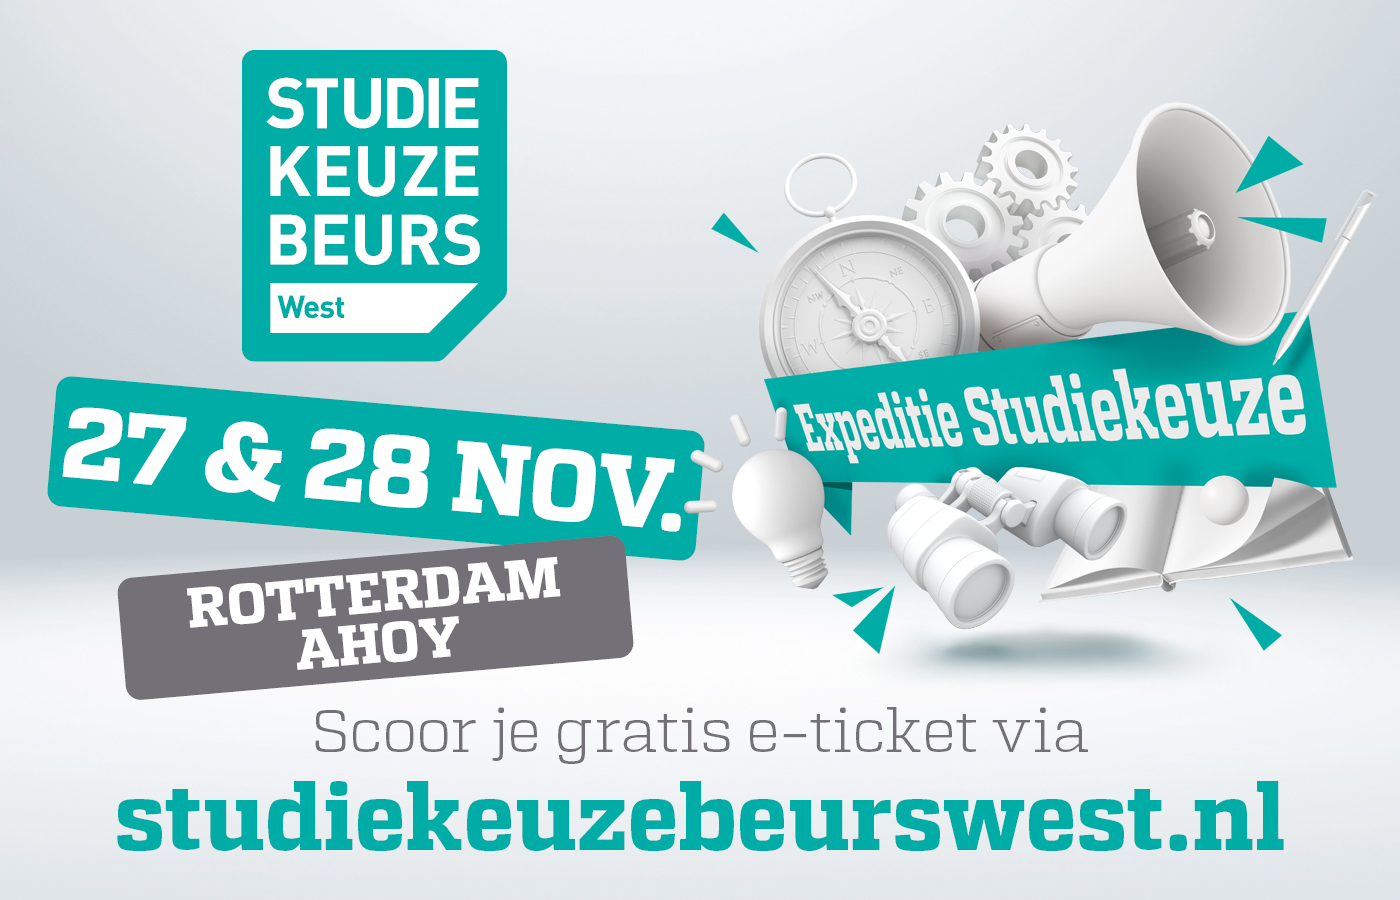 Studiekeuzebeurs West Narrowcasting